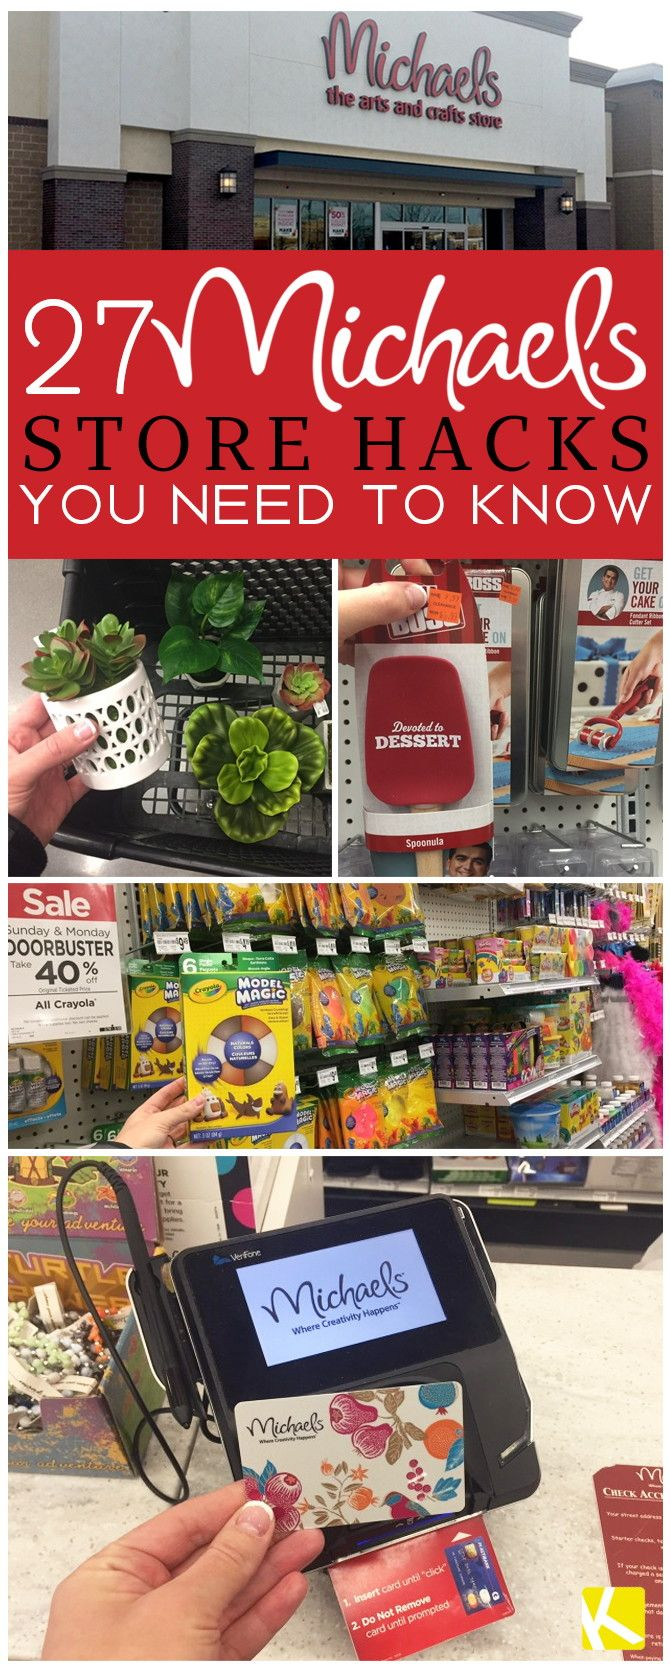 27 Michaels Store Hacks You Need to Know | Couponing | Pinterest ...